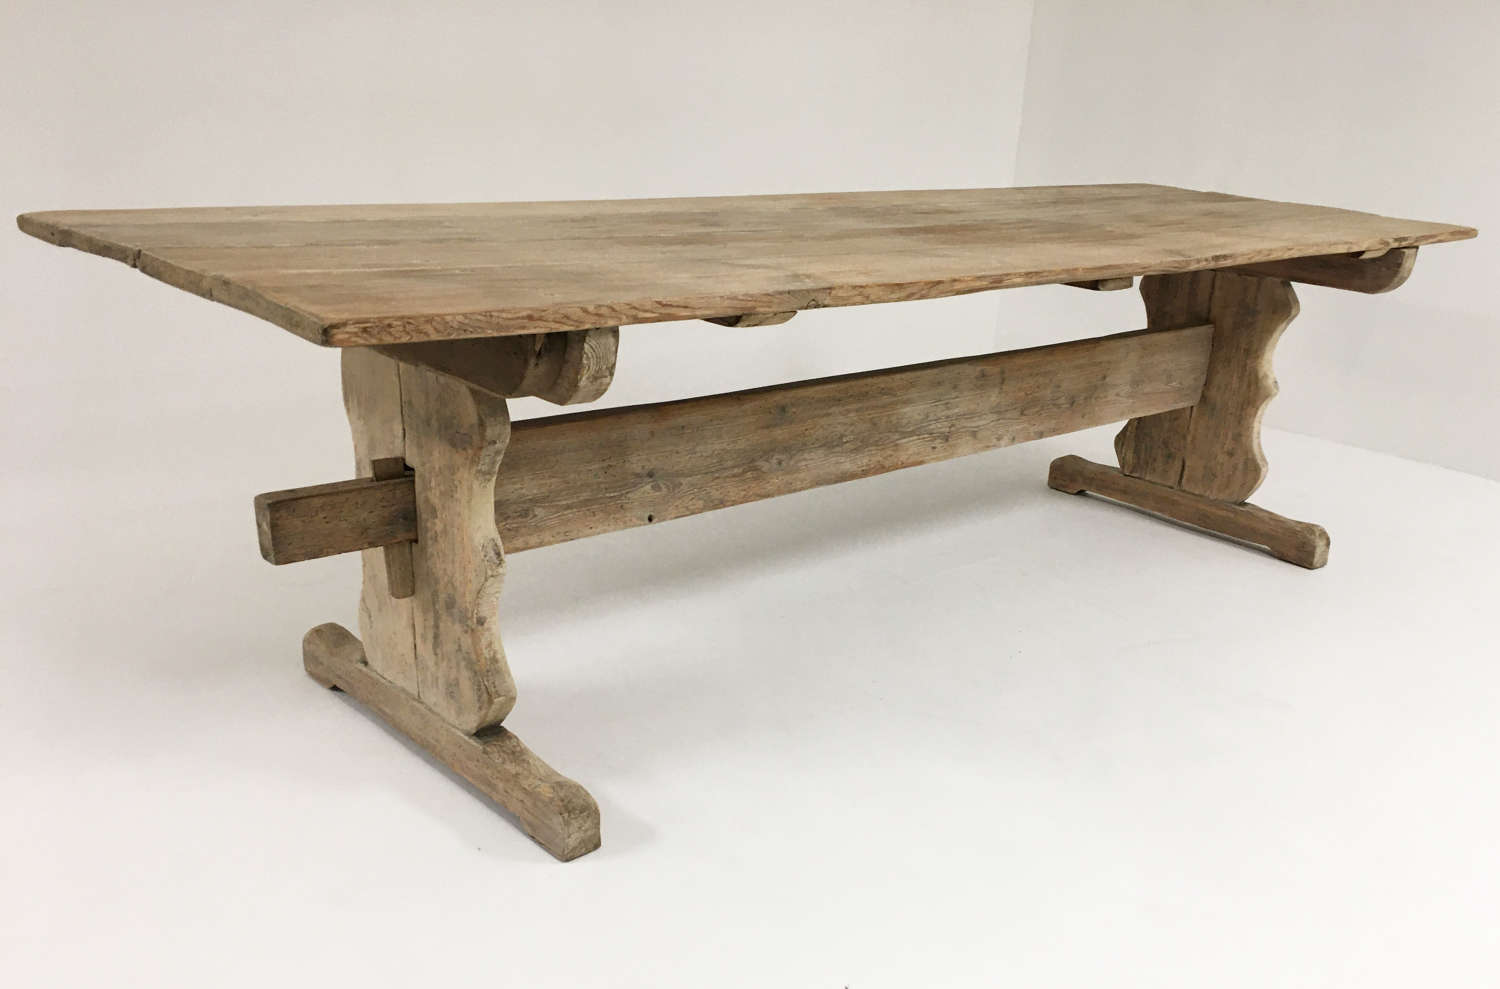 19th c Swedish Rustic Pine Dining Table - 1820